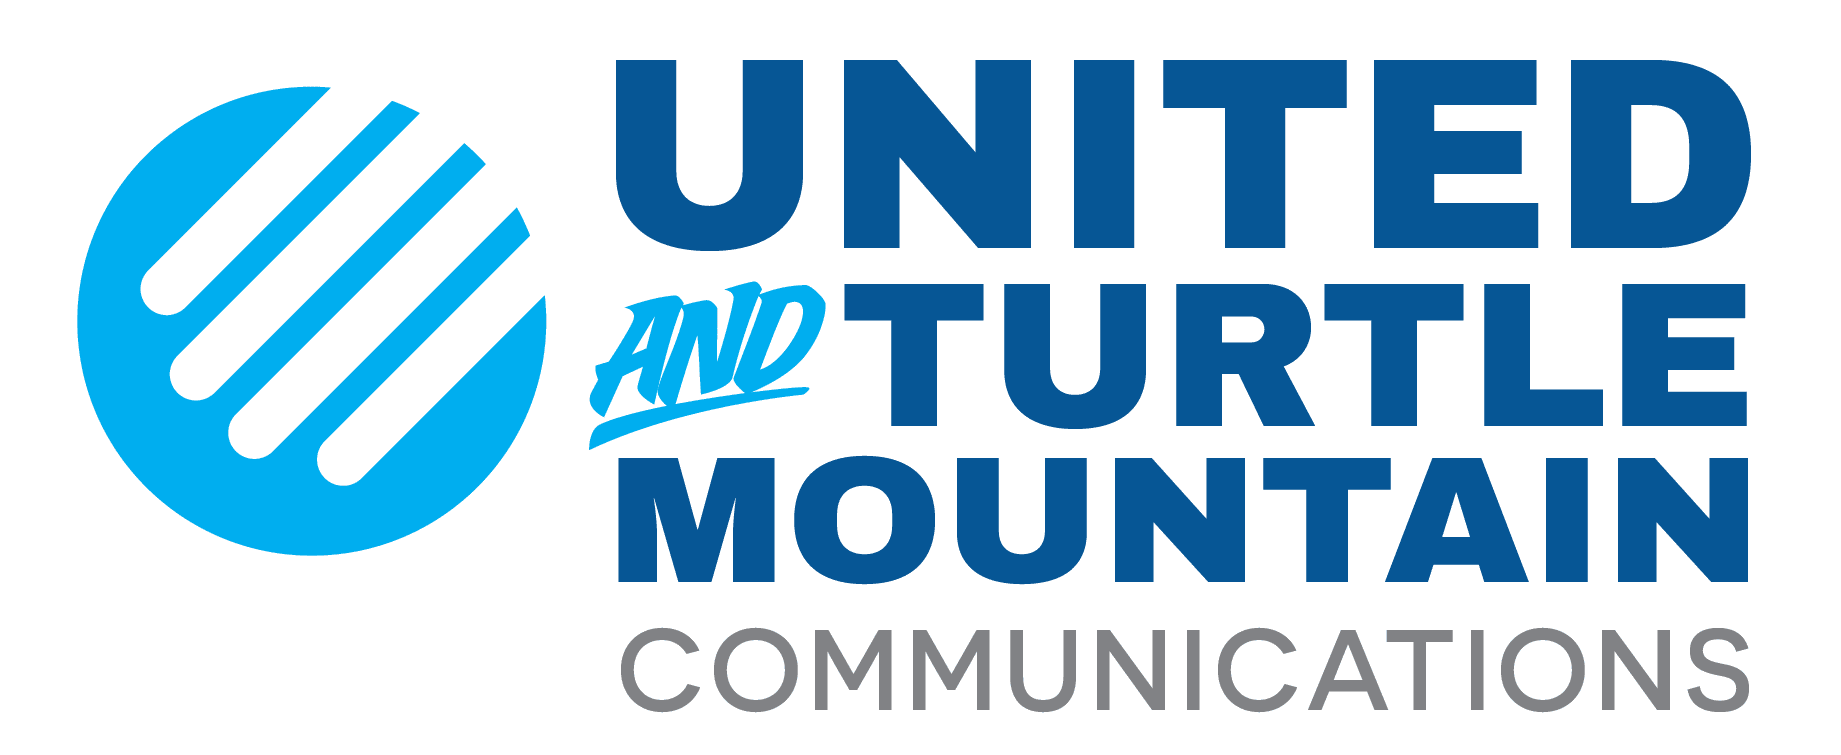 United & Turtle Mountain Communications